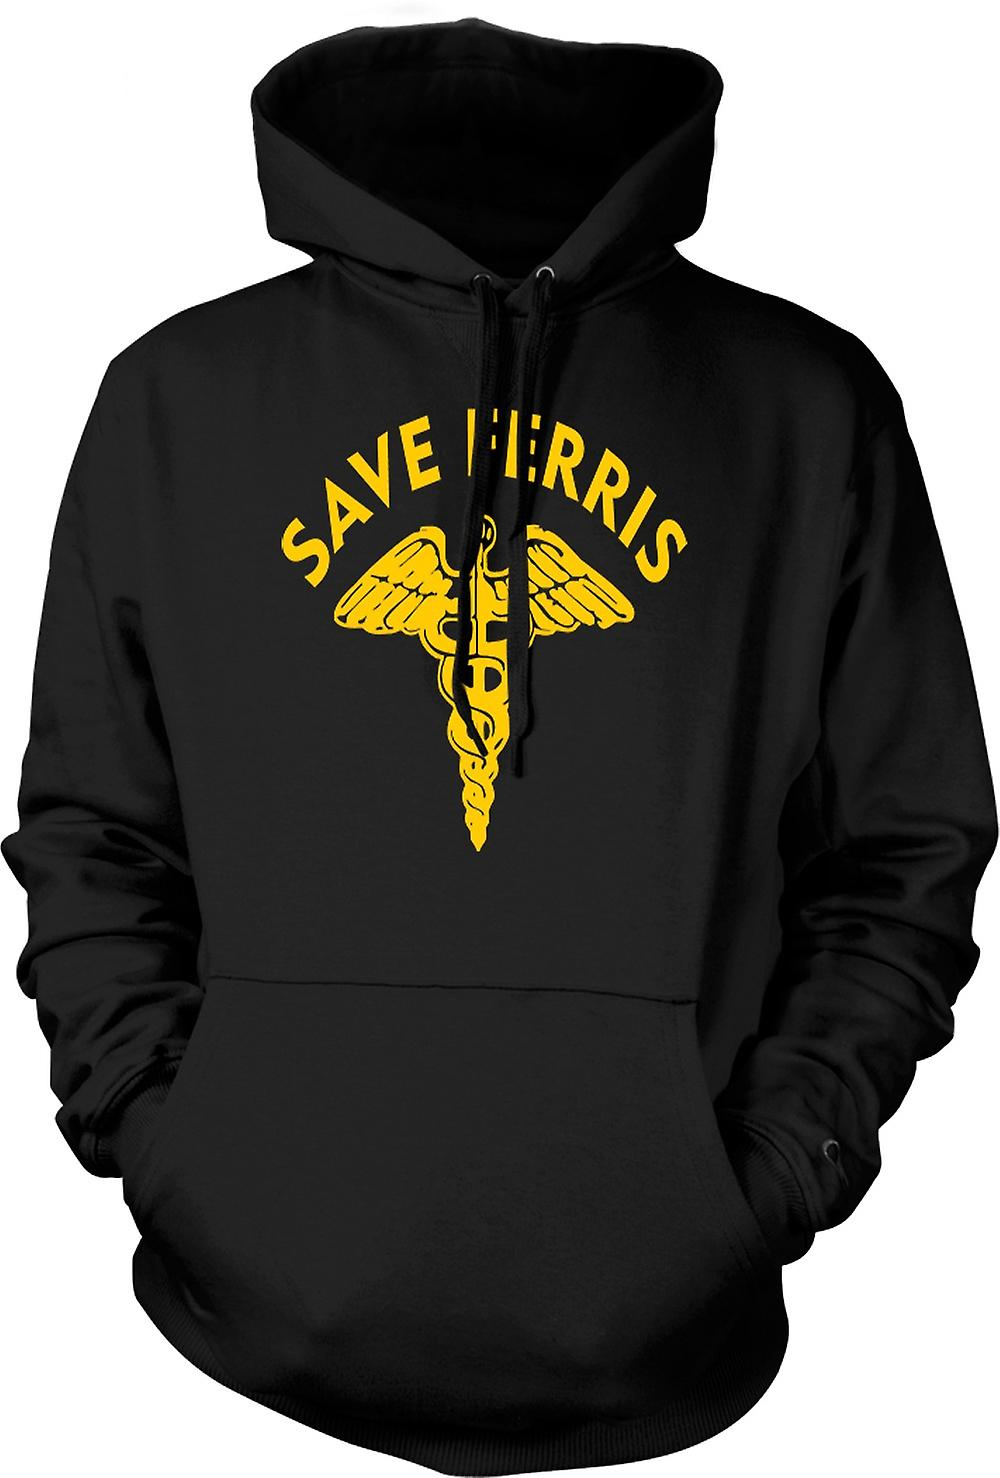 Mens Hoodie - Ferris Buellers Save - Cult Movie